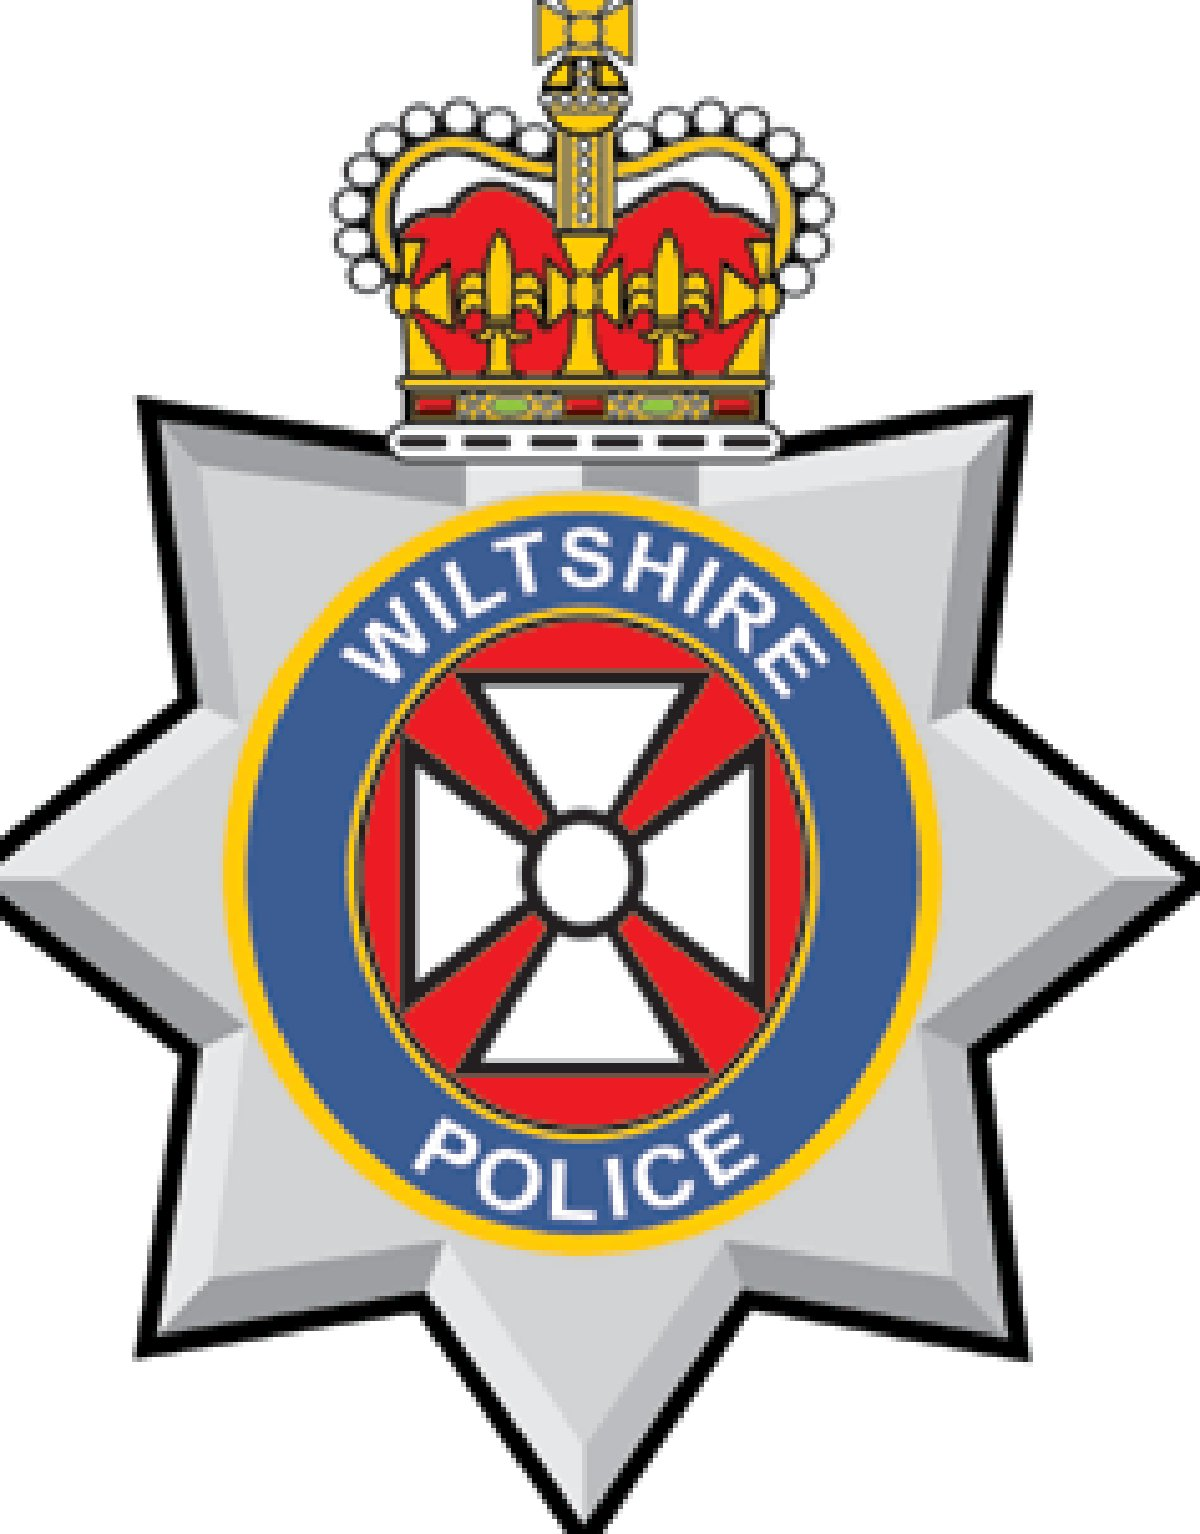 Wiltshire Police are warning of a large-scale computer virus